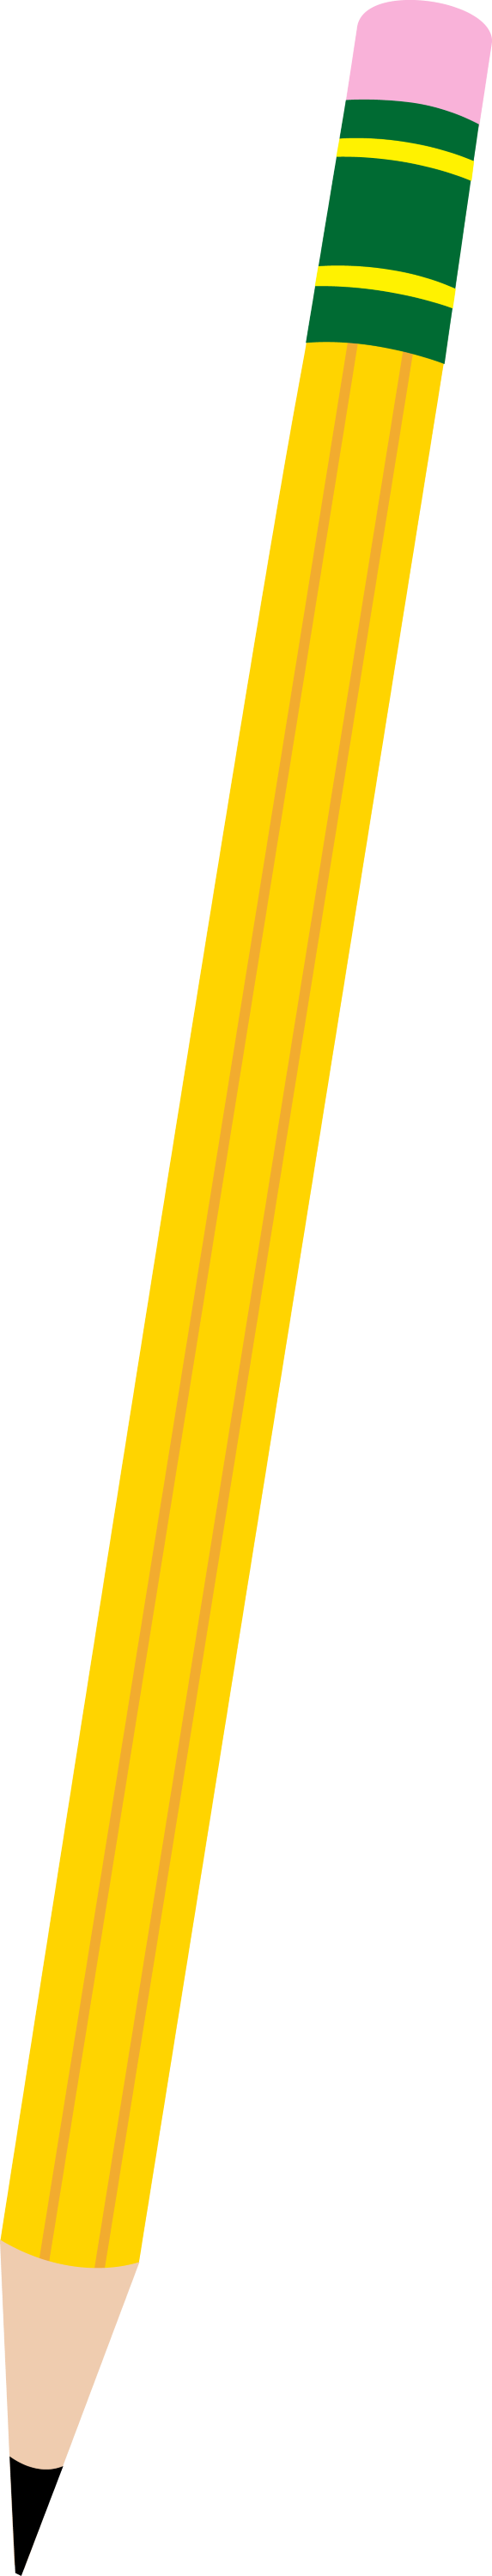 simple yellow pencil free clip art